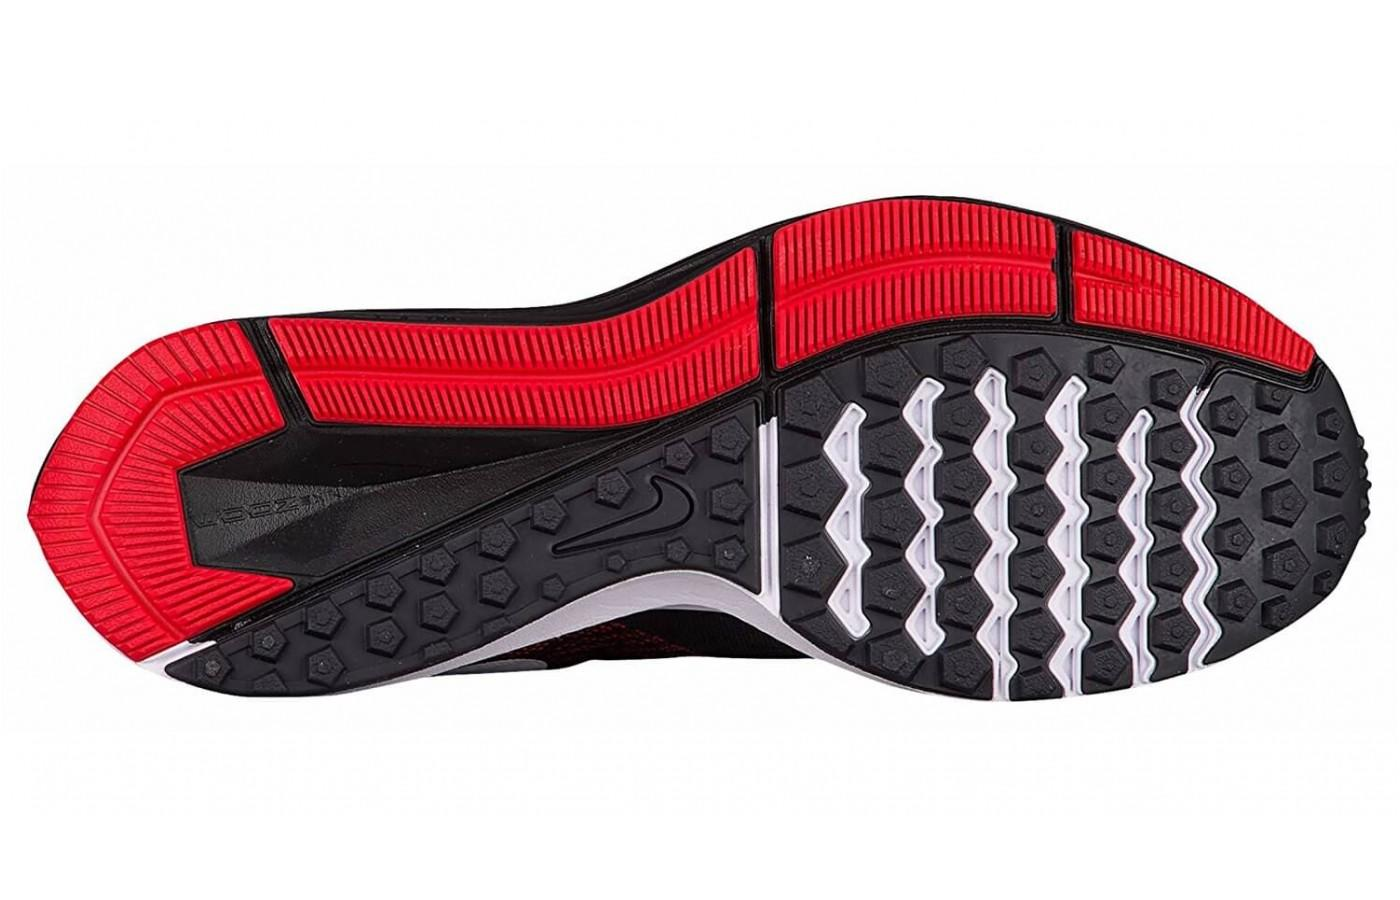 03d2457fee9436 The Nike Zoom Winflow 4 is lightweight and breathable. The waffle design of  the outsole provides added traction ...